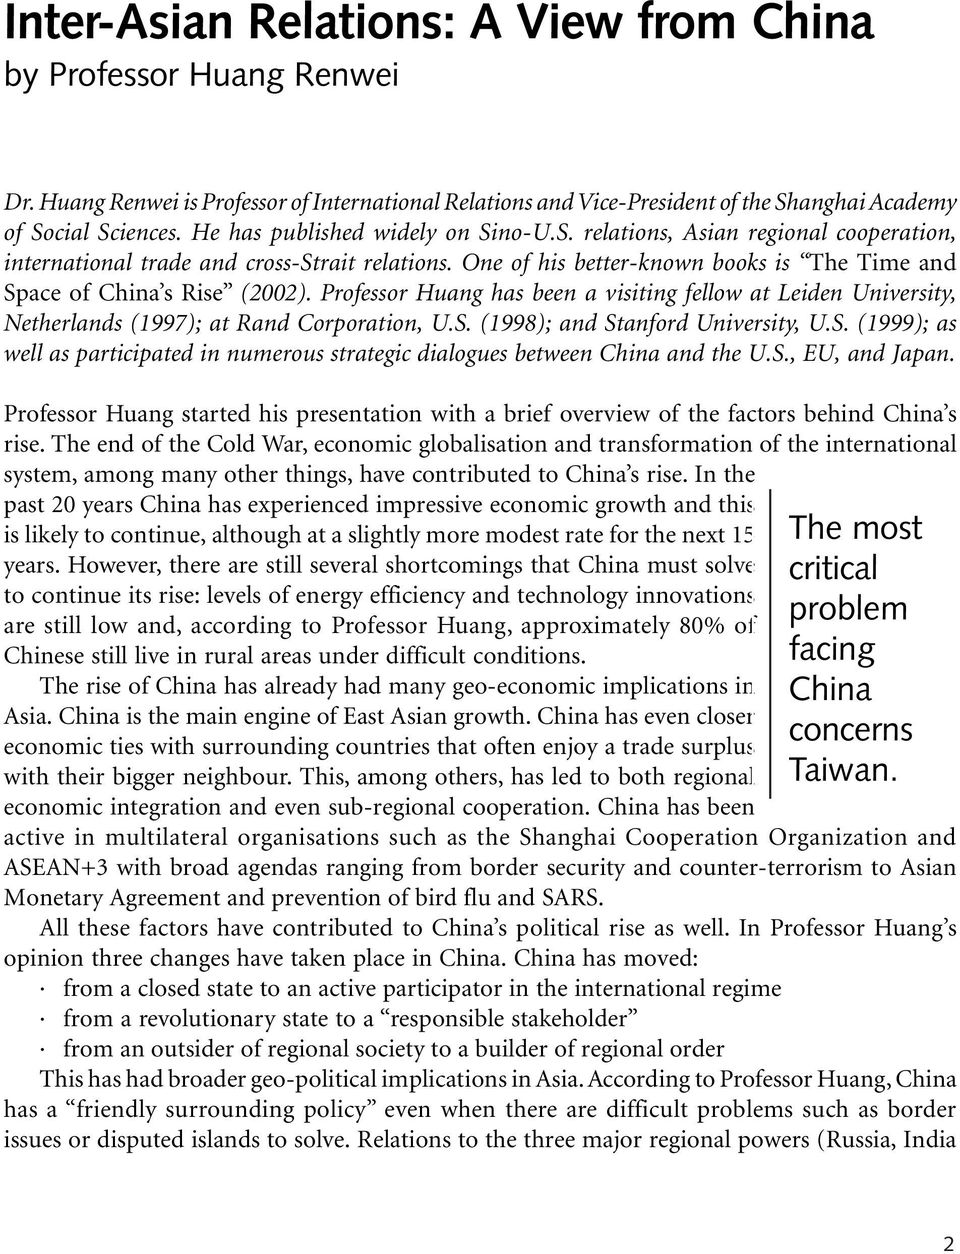 Professor Huang has been a visiting fellow at Leiden University, Netherlands (1997); at Rand Corporation, U.S. (1998); and Stanford University, U.S. (1999); as well as participated in numerous strategic dialogues between China and the U.